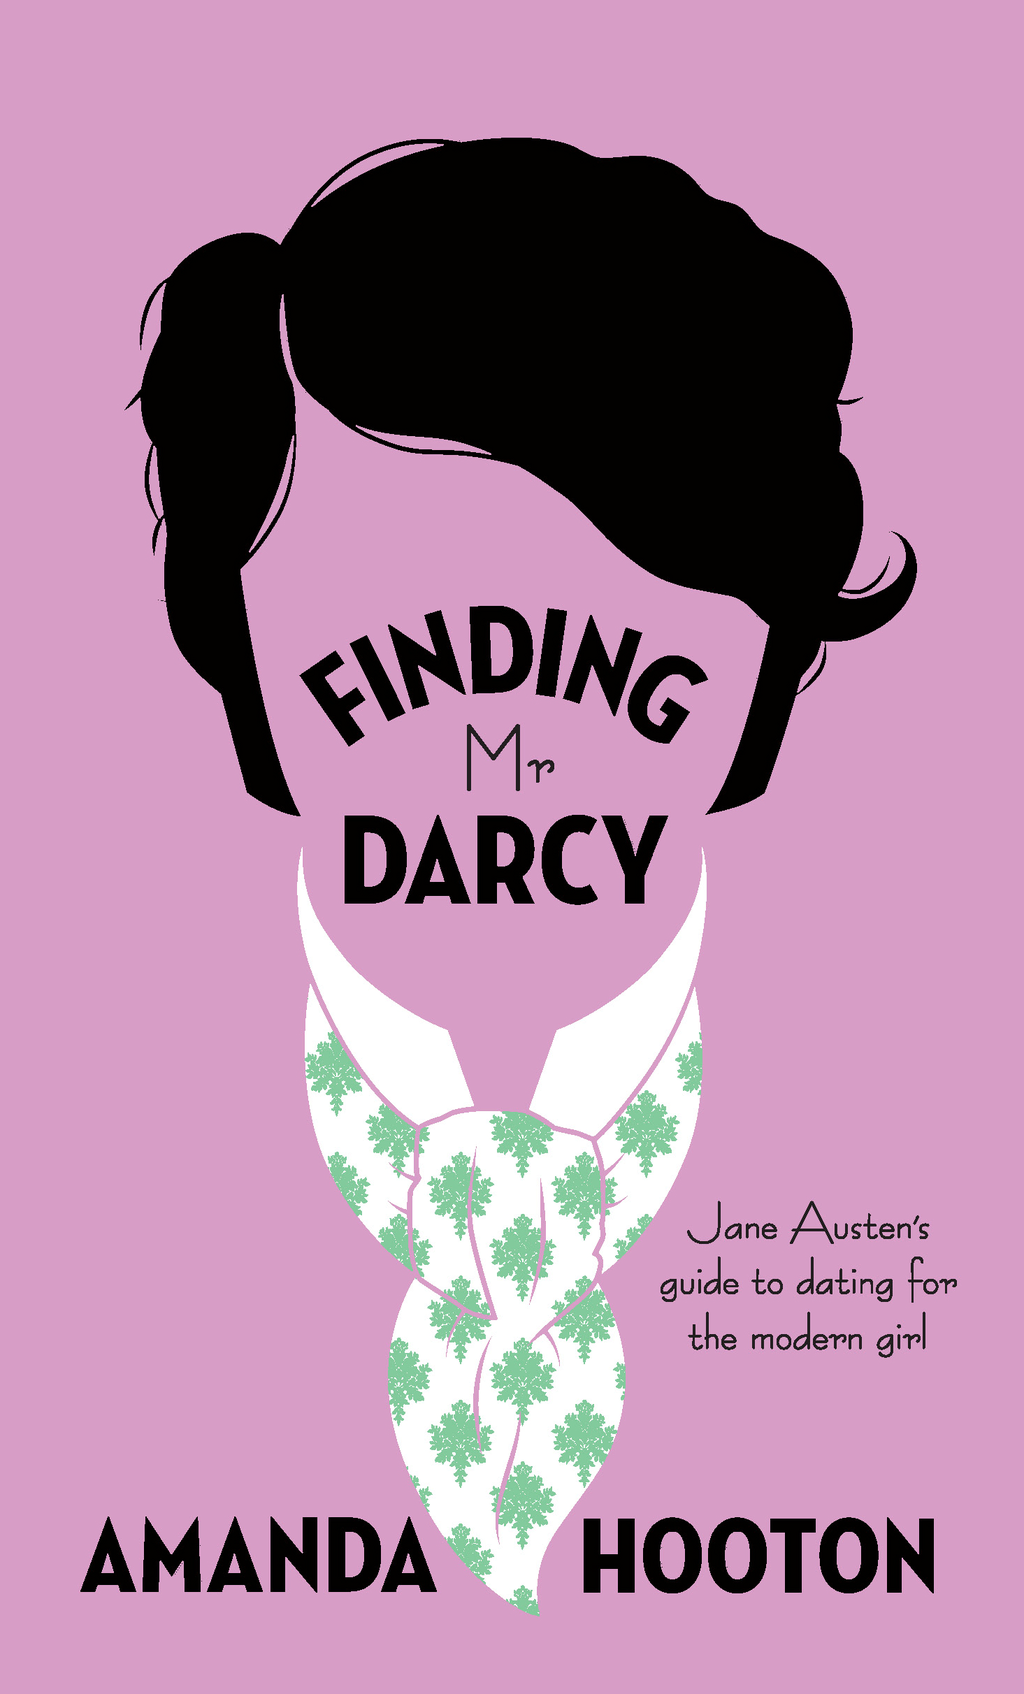 Finding Mr Darcy Jane Austen's Guide to Dating & Relationships